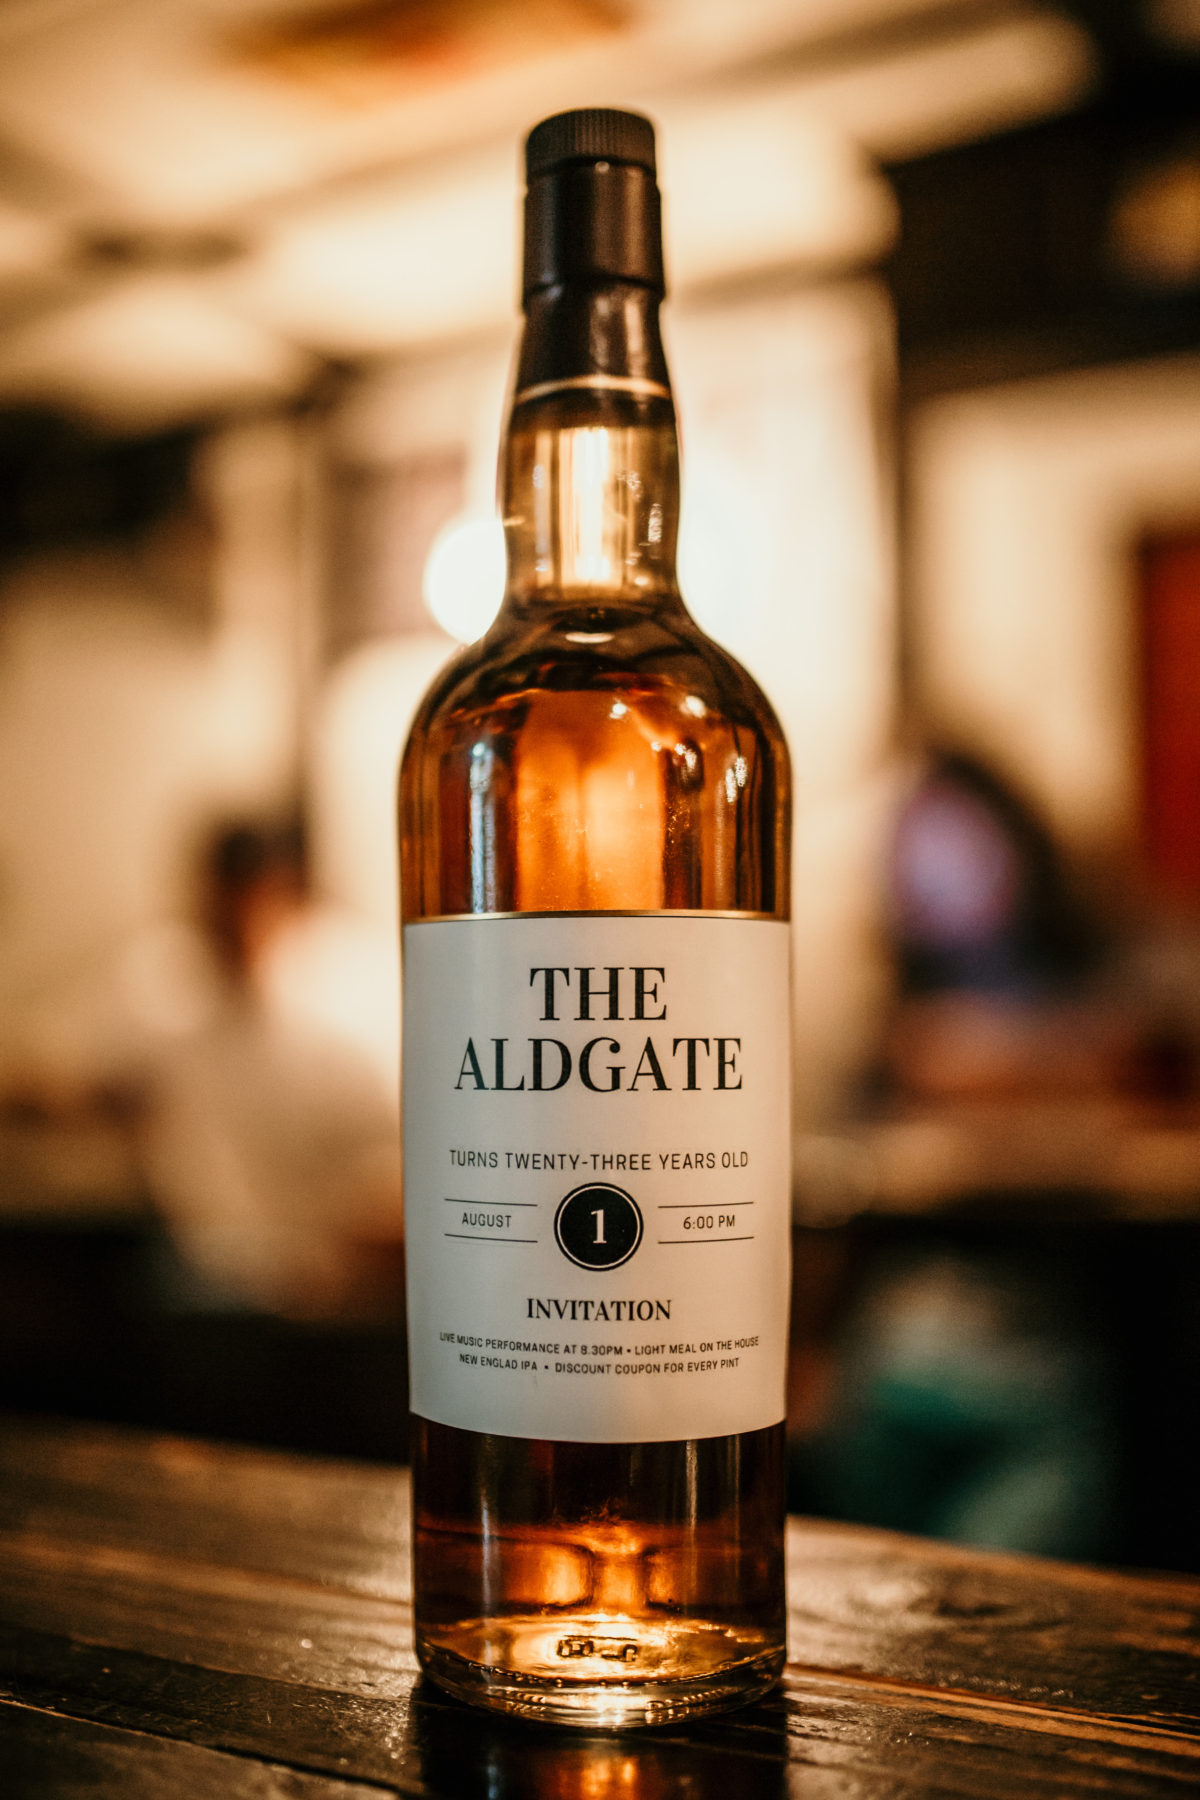 The Aldgate 23rd anniversary whisky bottle